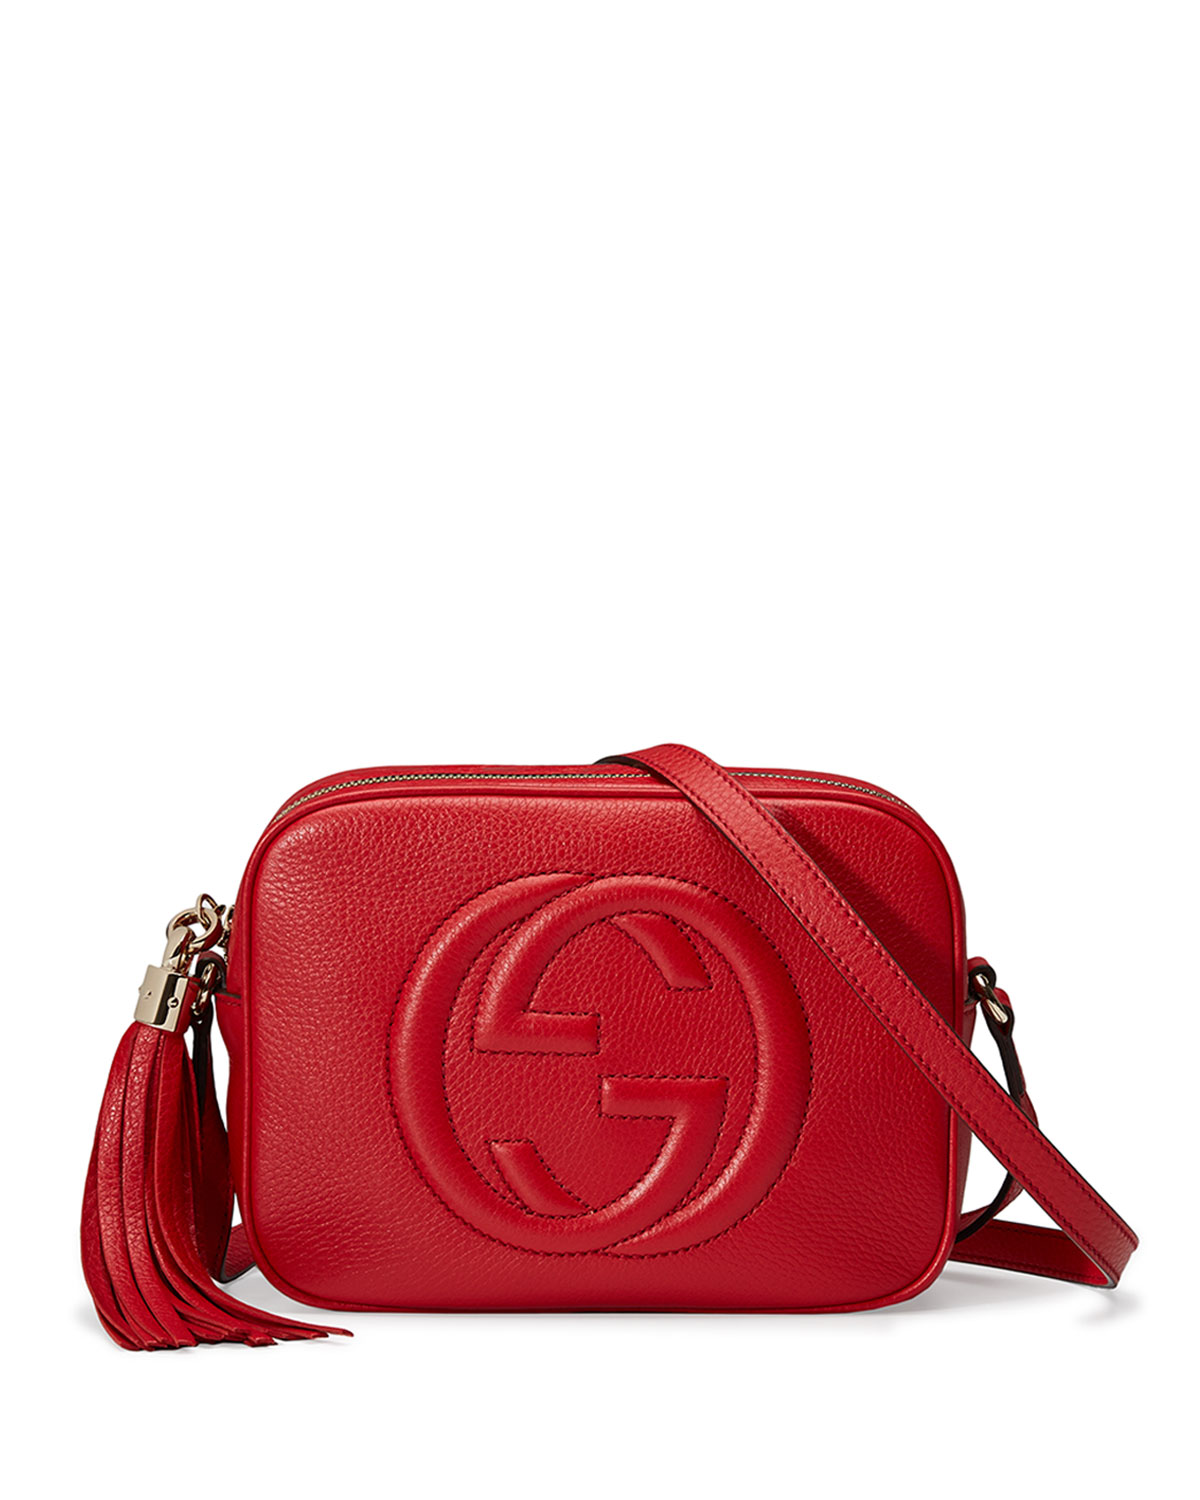 89c0c0fe2a3f Gucci Soho Leather Disco Bag, Tobasco Red | Neiman Marcus